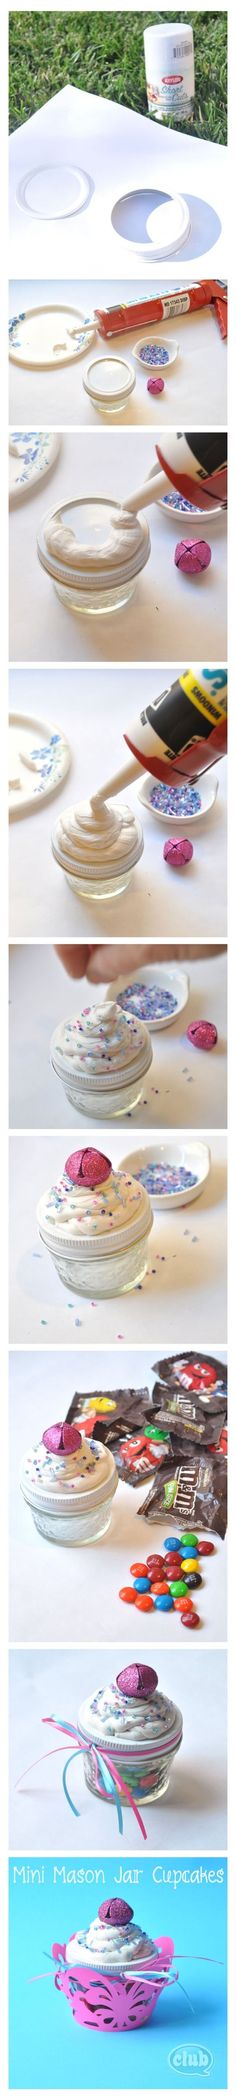 DIY Mason jar cupcakes  - Too cute!